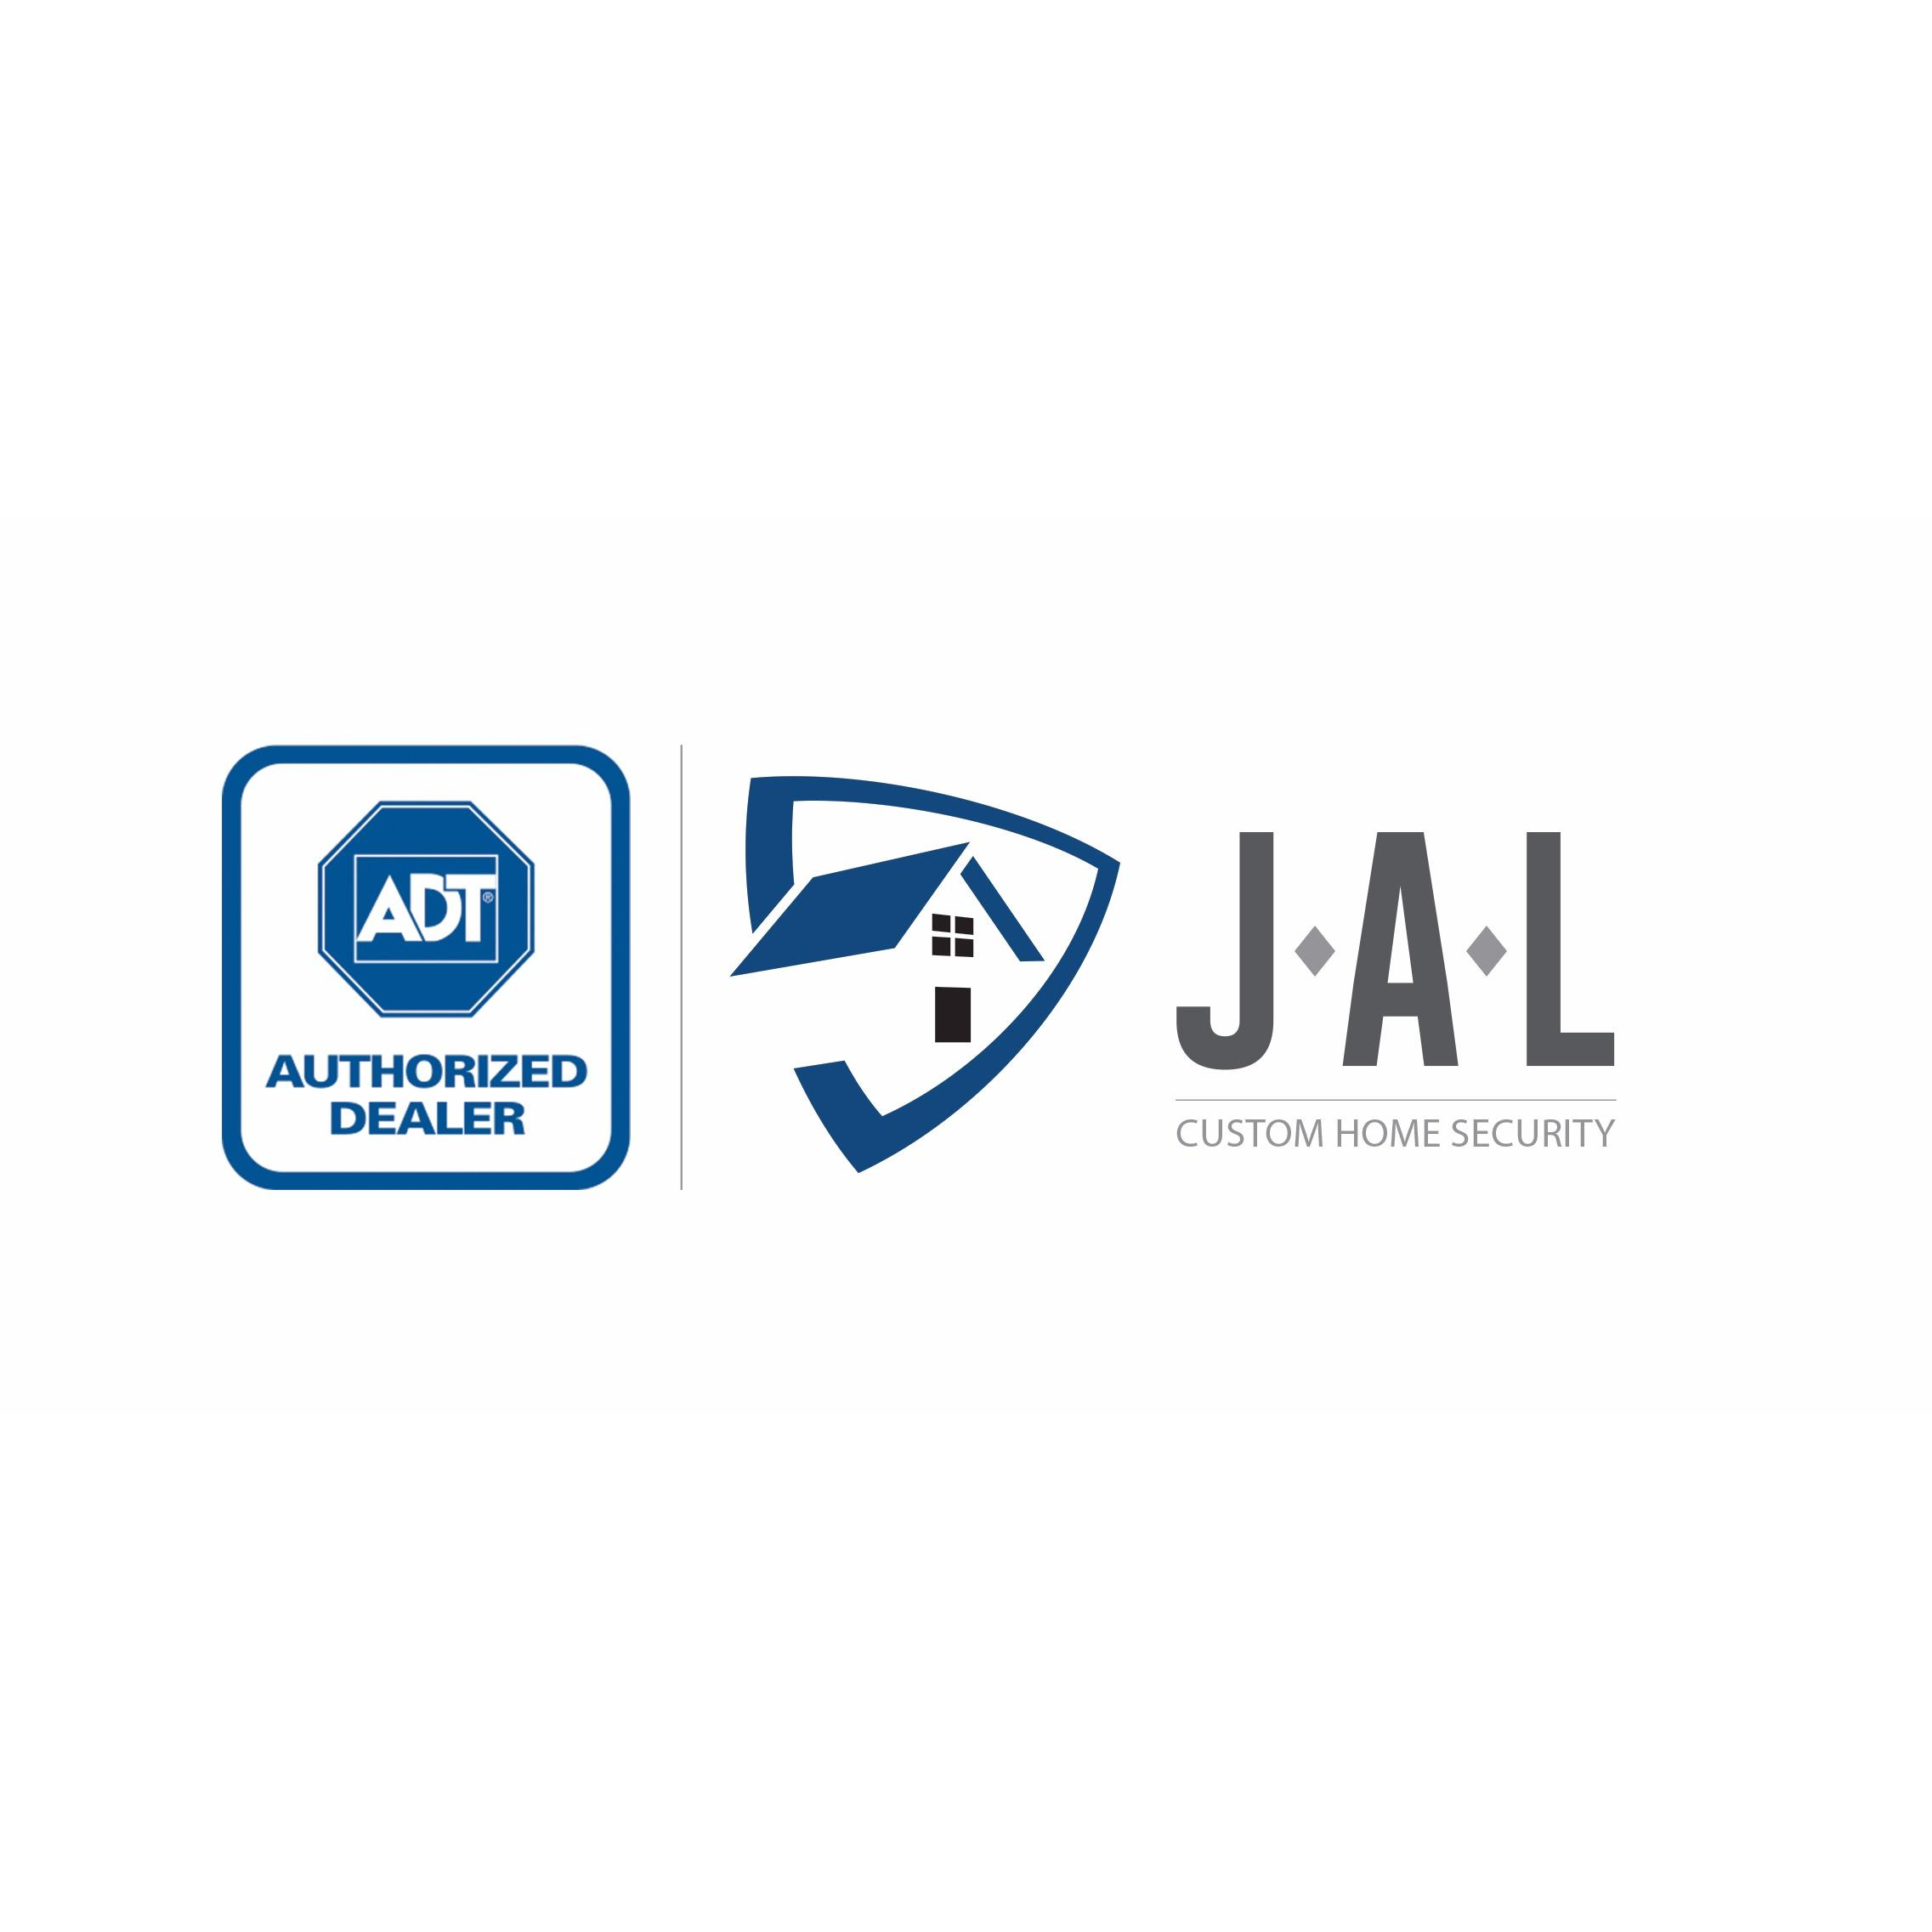 J A L Custom Home Security, LLC - Authorized ADT Dealer